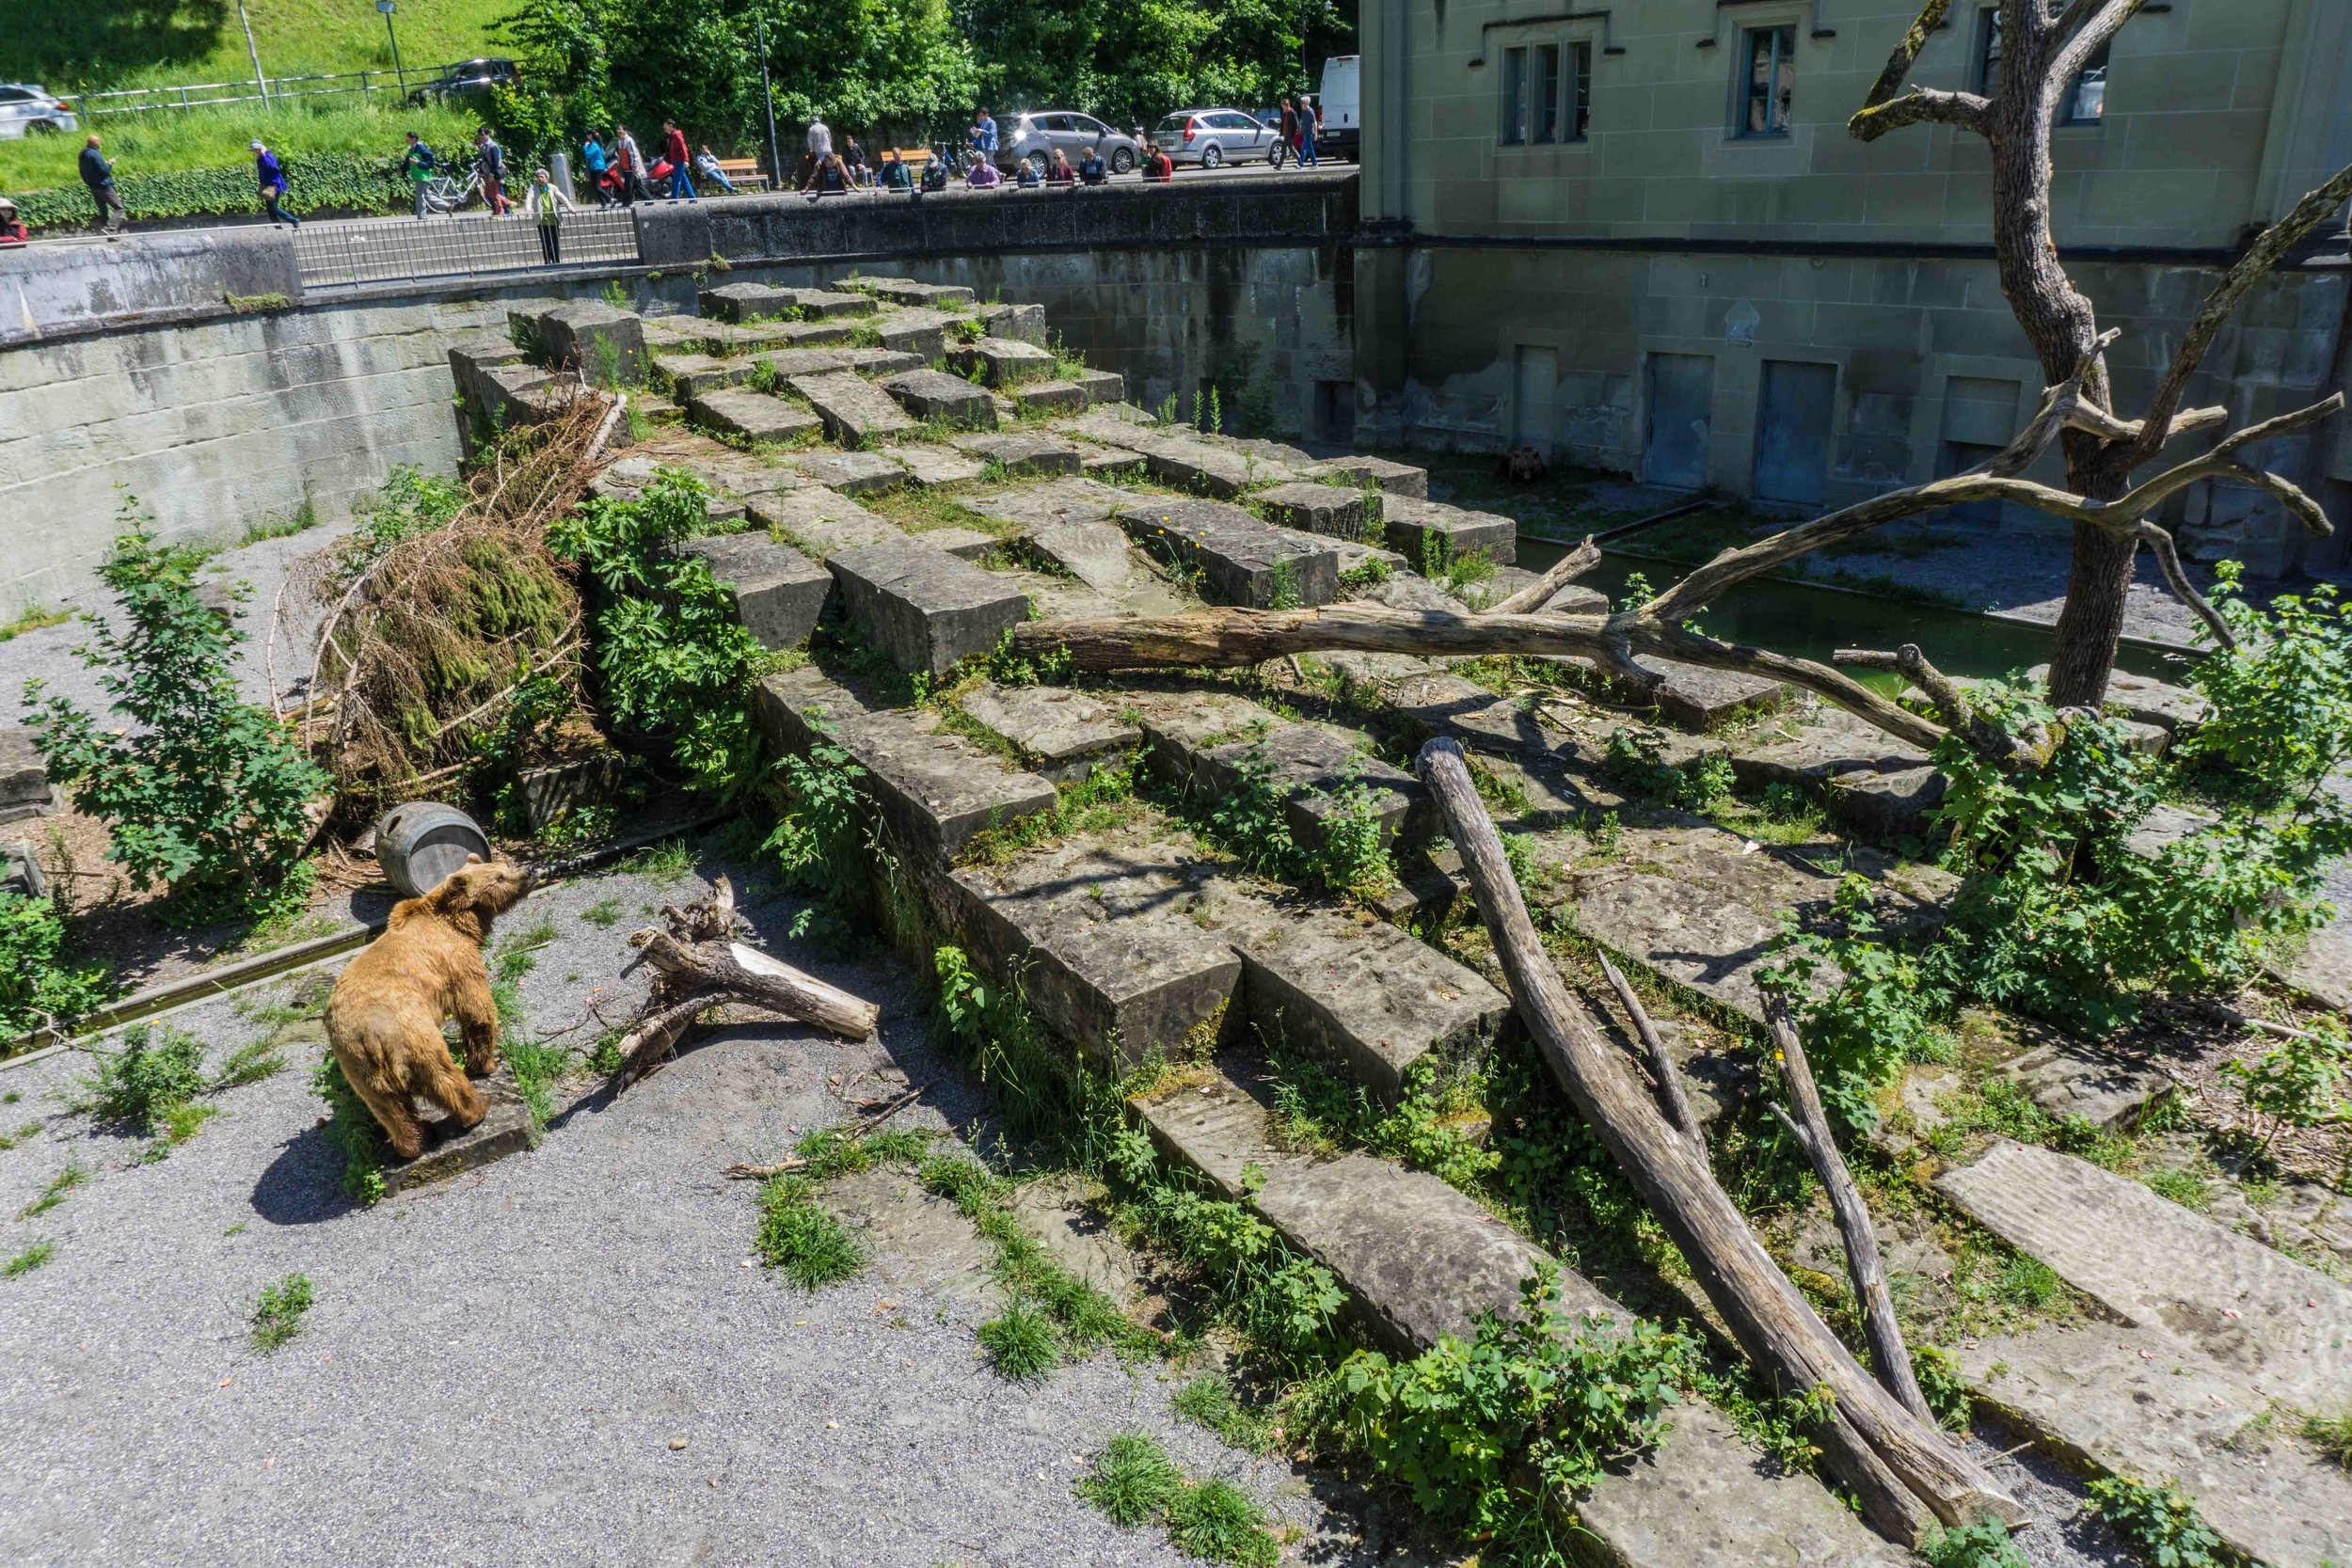 They always have a bear habitat in Bern - this is crazy! They're always there, even at night.